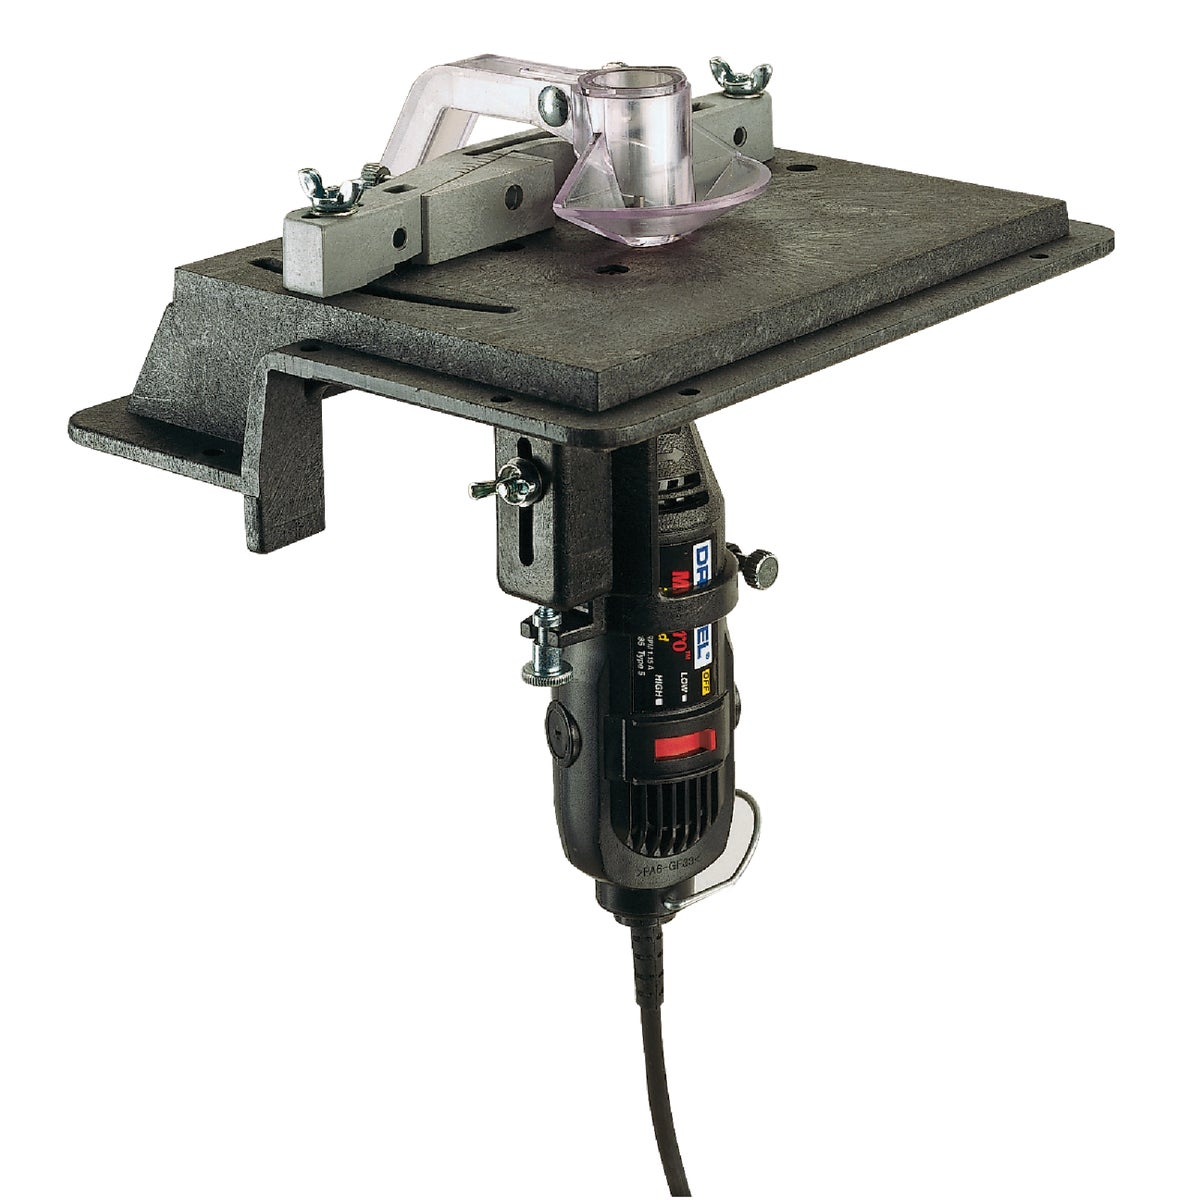 SHAPER/ROUTER TABLE - 231 by Dremel Mfg Co